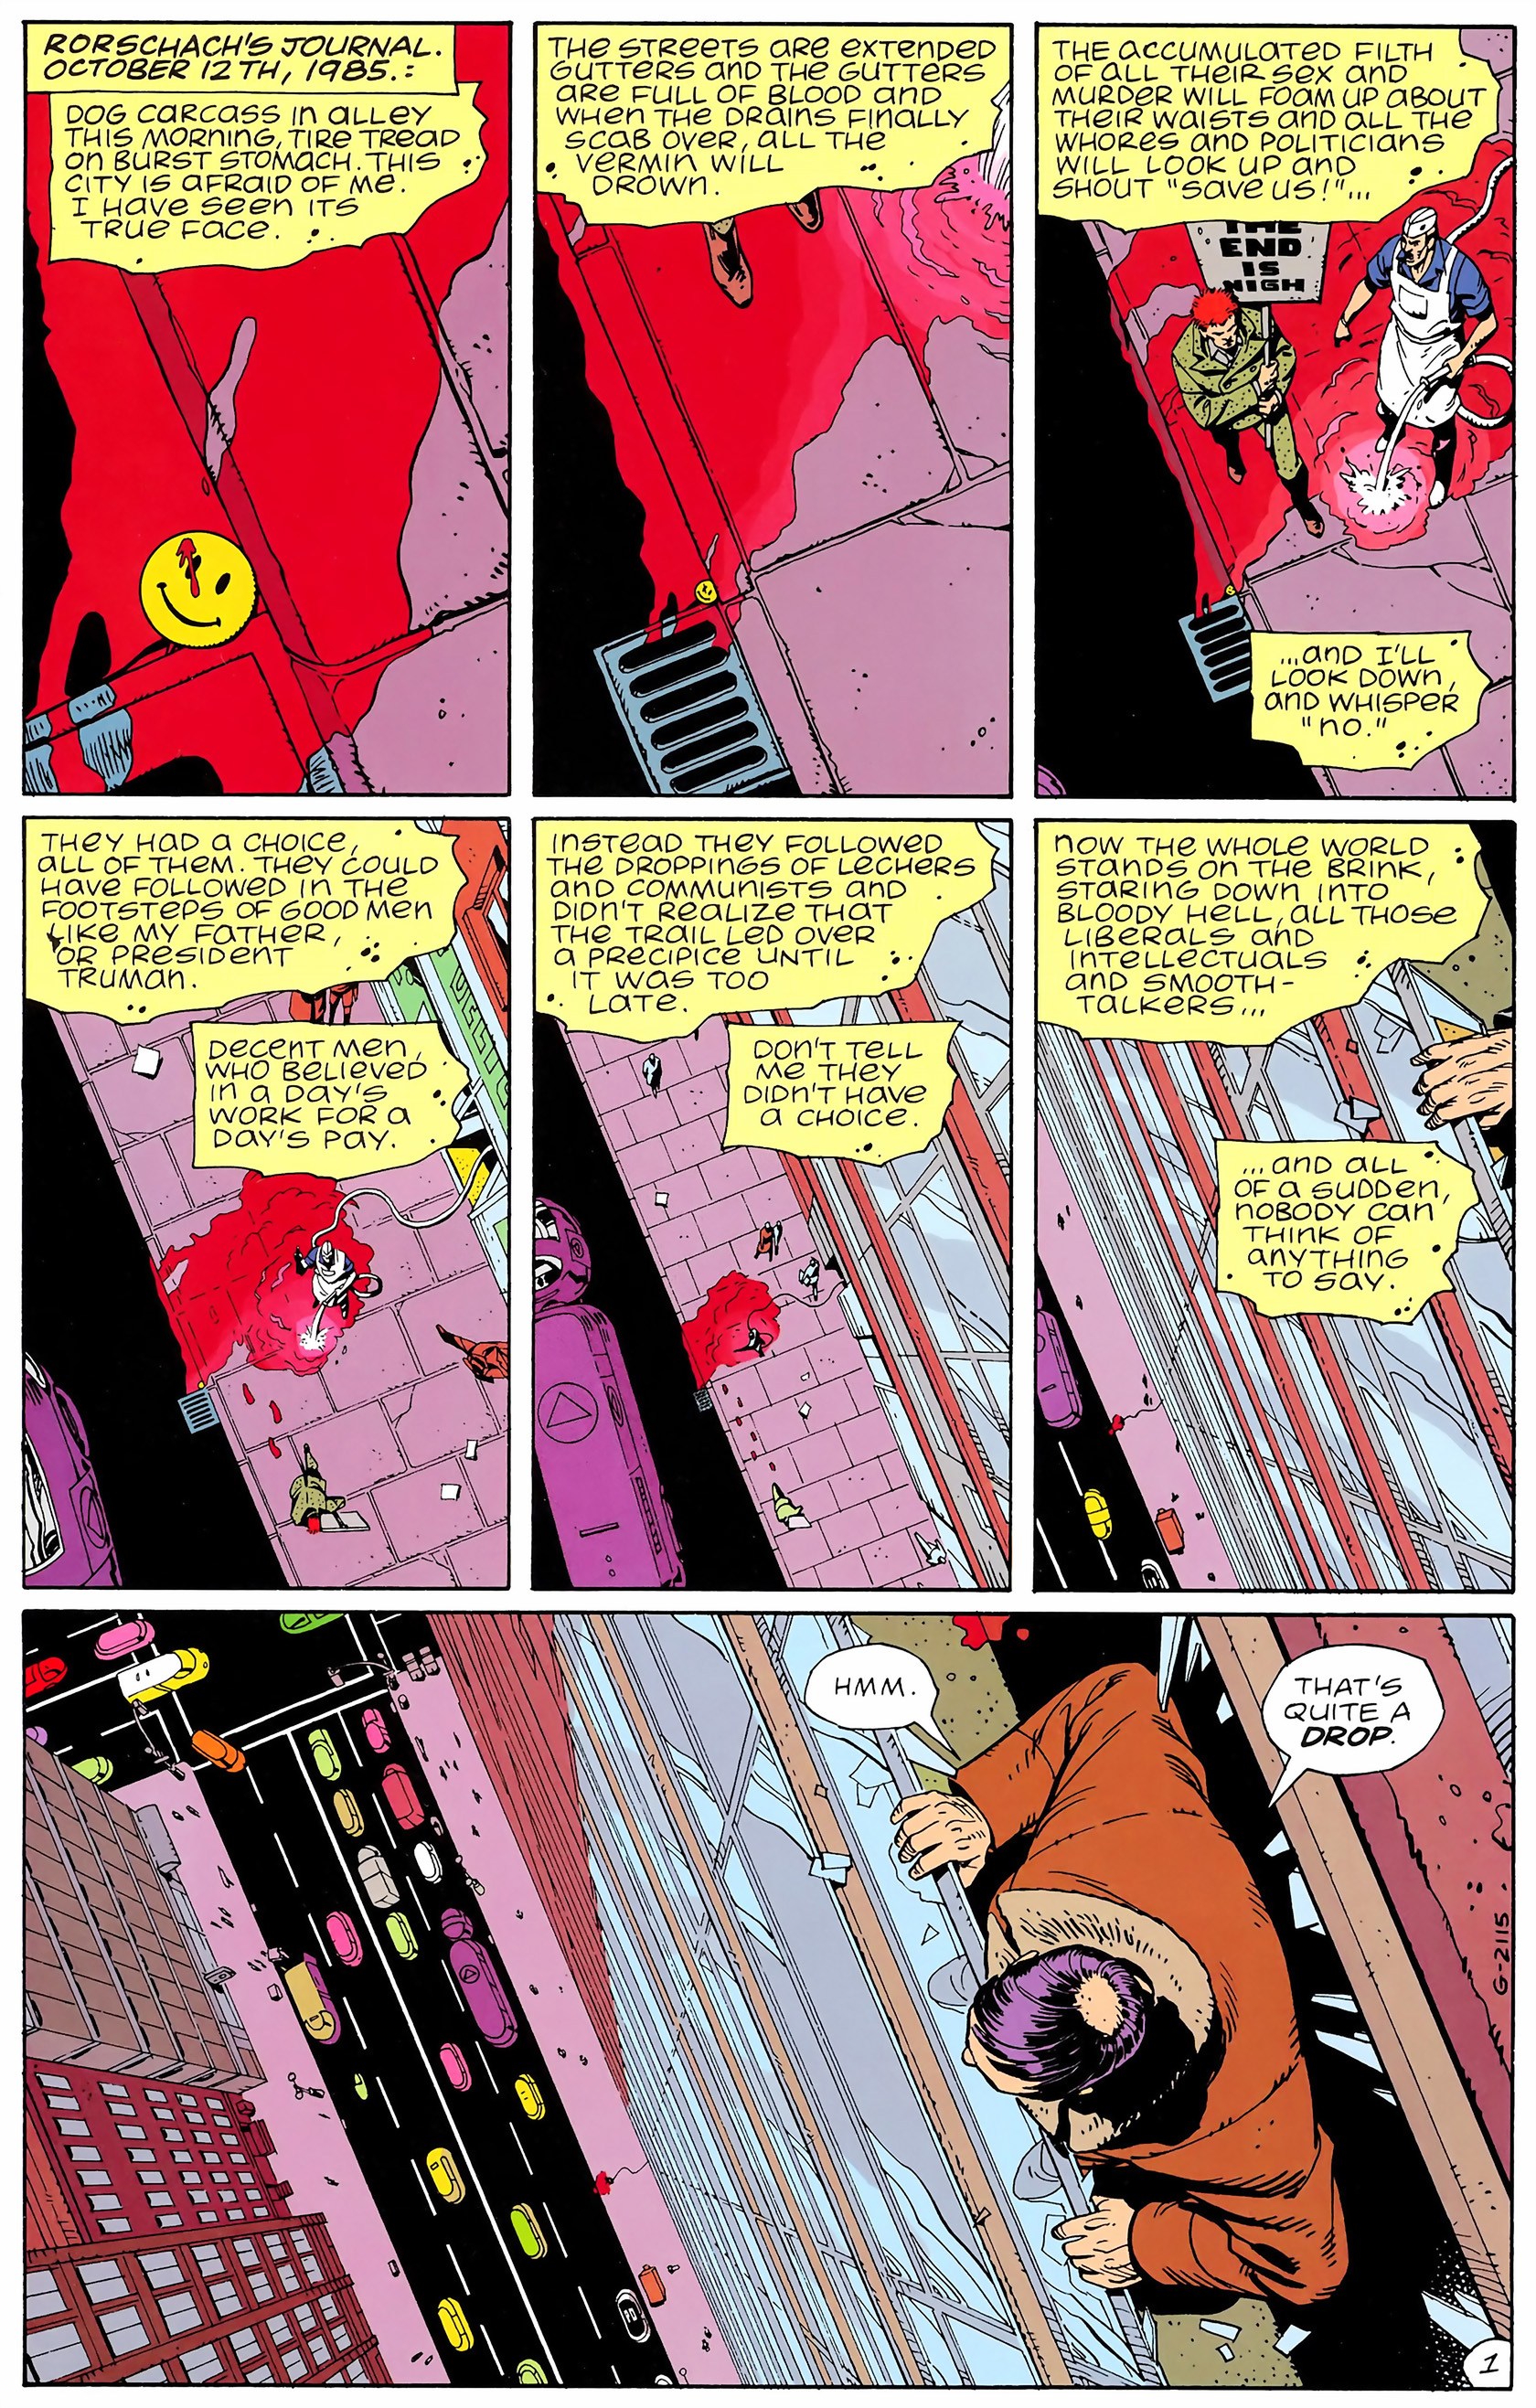 Cartoons/Comics/Memes - Page 2 Watchmen_Comic_-1_Page_1